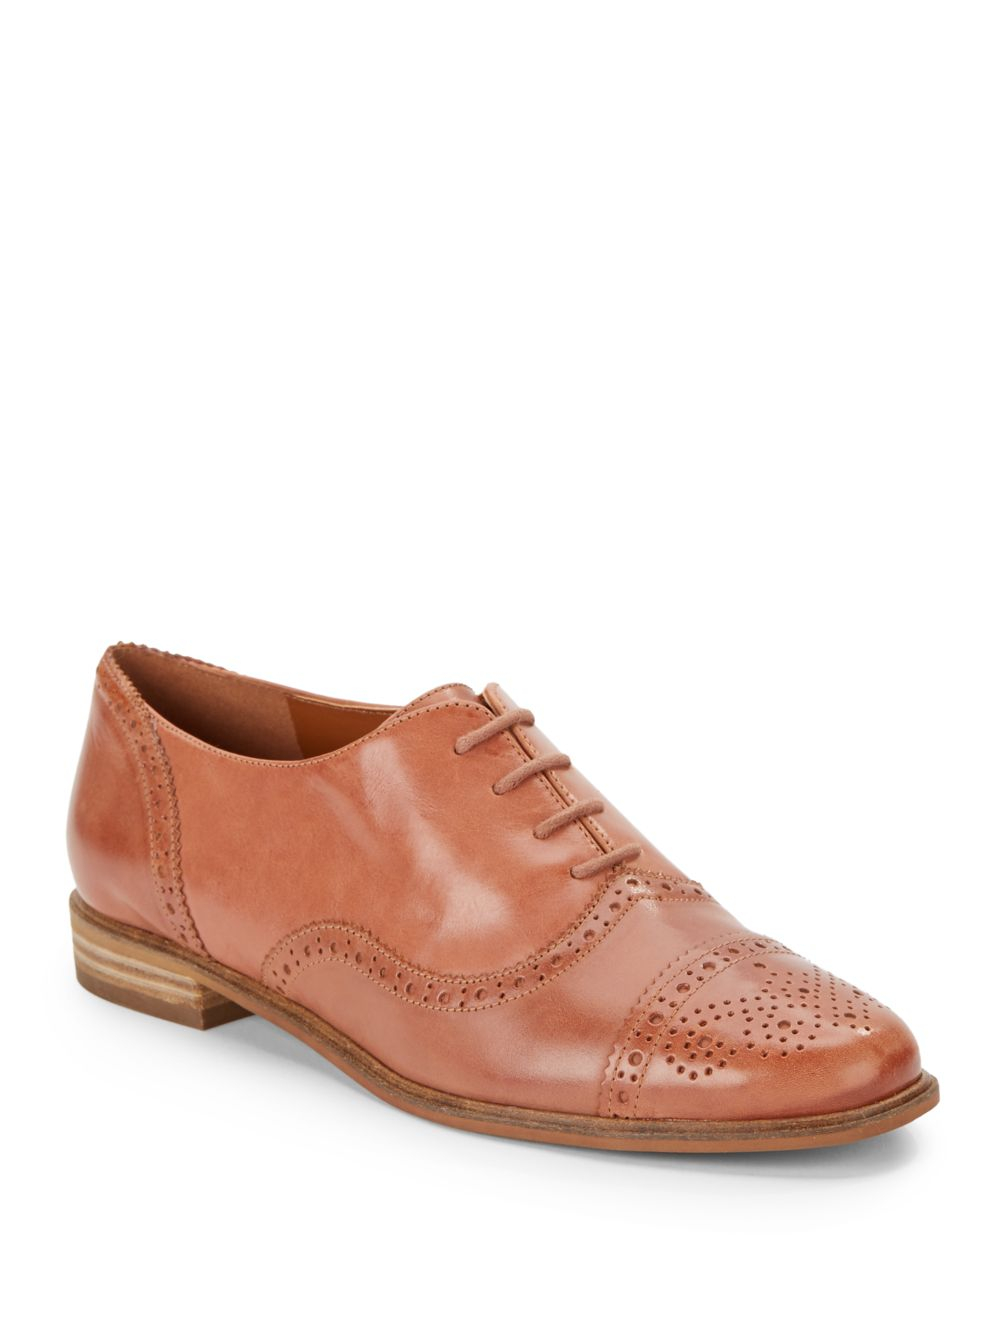 Enzo Angiolini Cristin Leather Oxford Shoes in Brown for Men - Lyst 3d49734f1